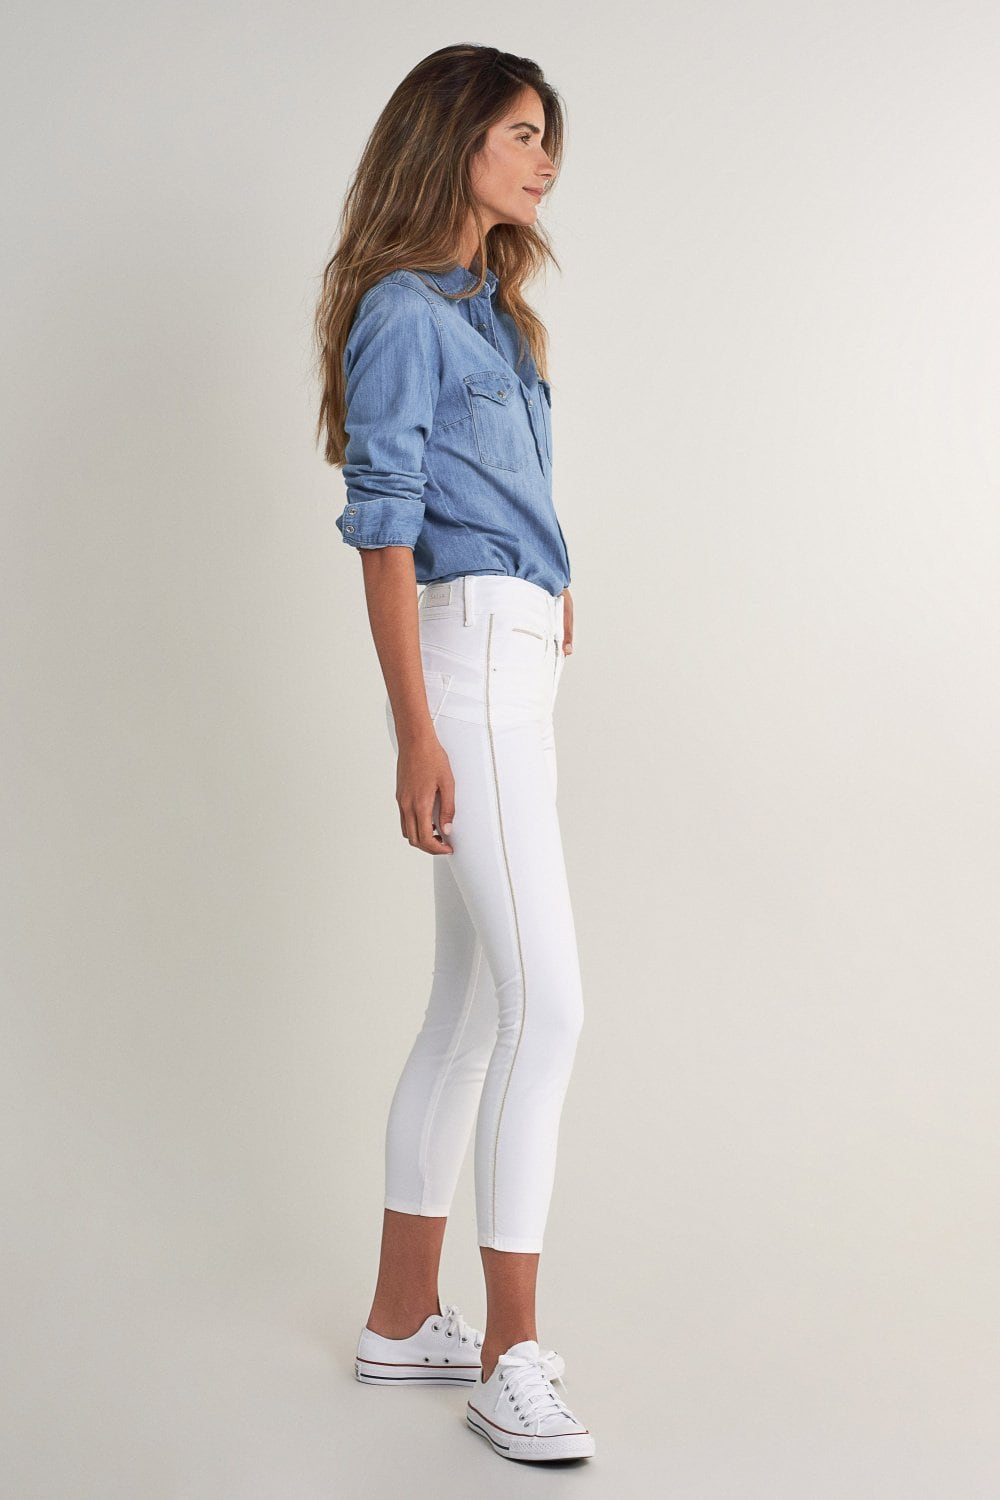 Push In Secret capri jeans with detail on side - Salsa